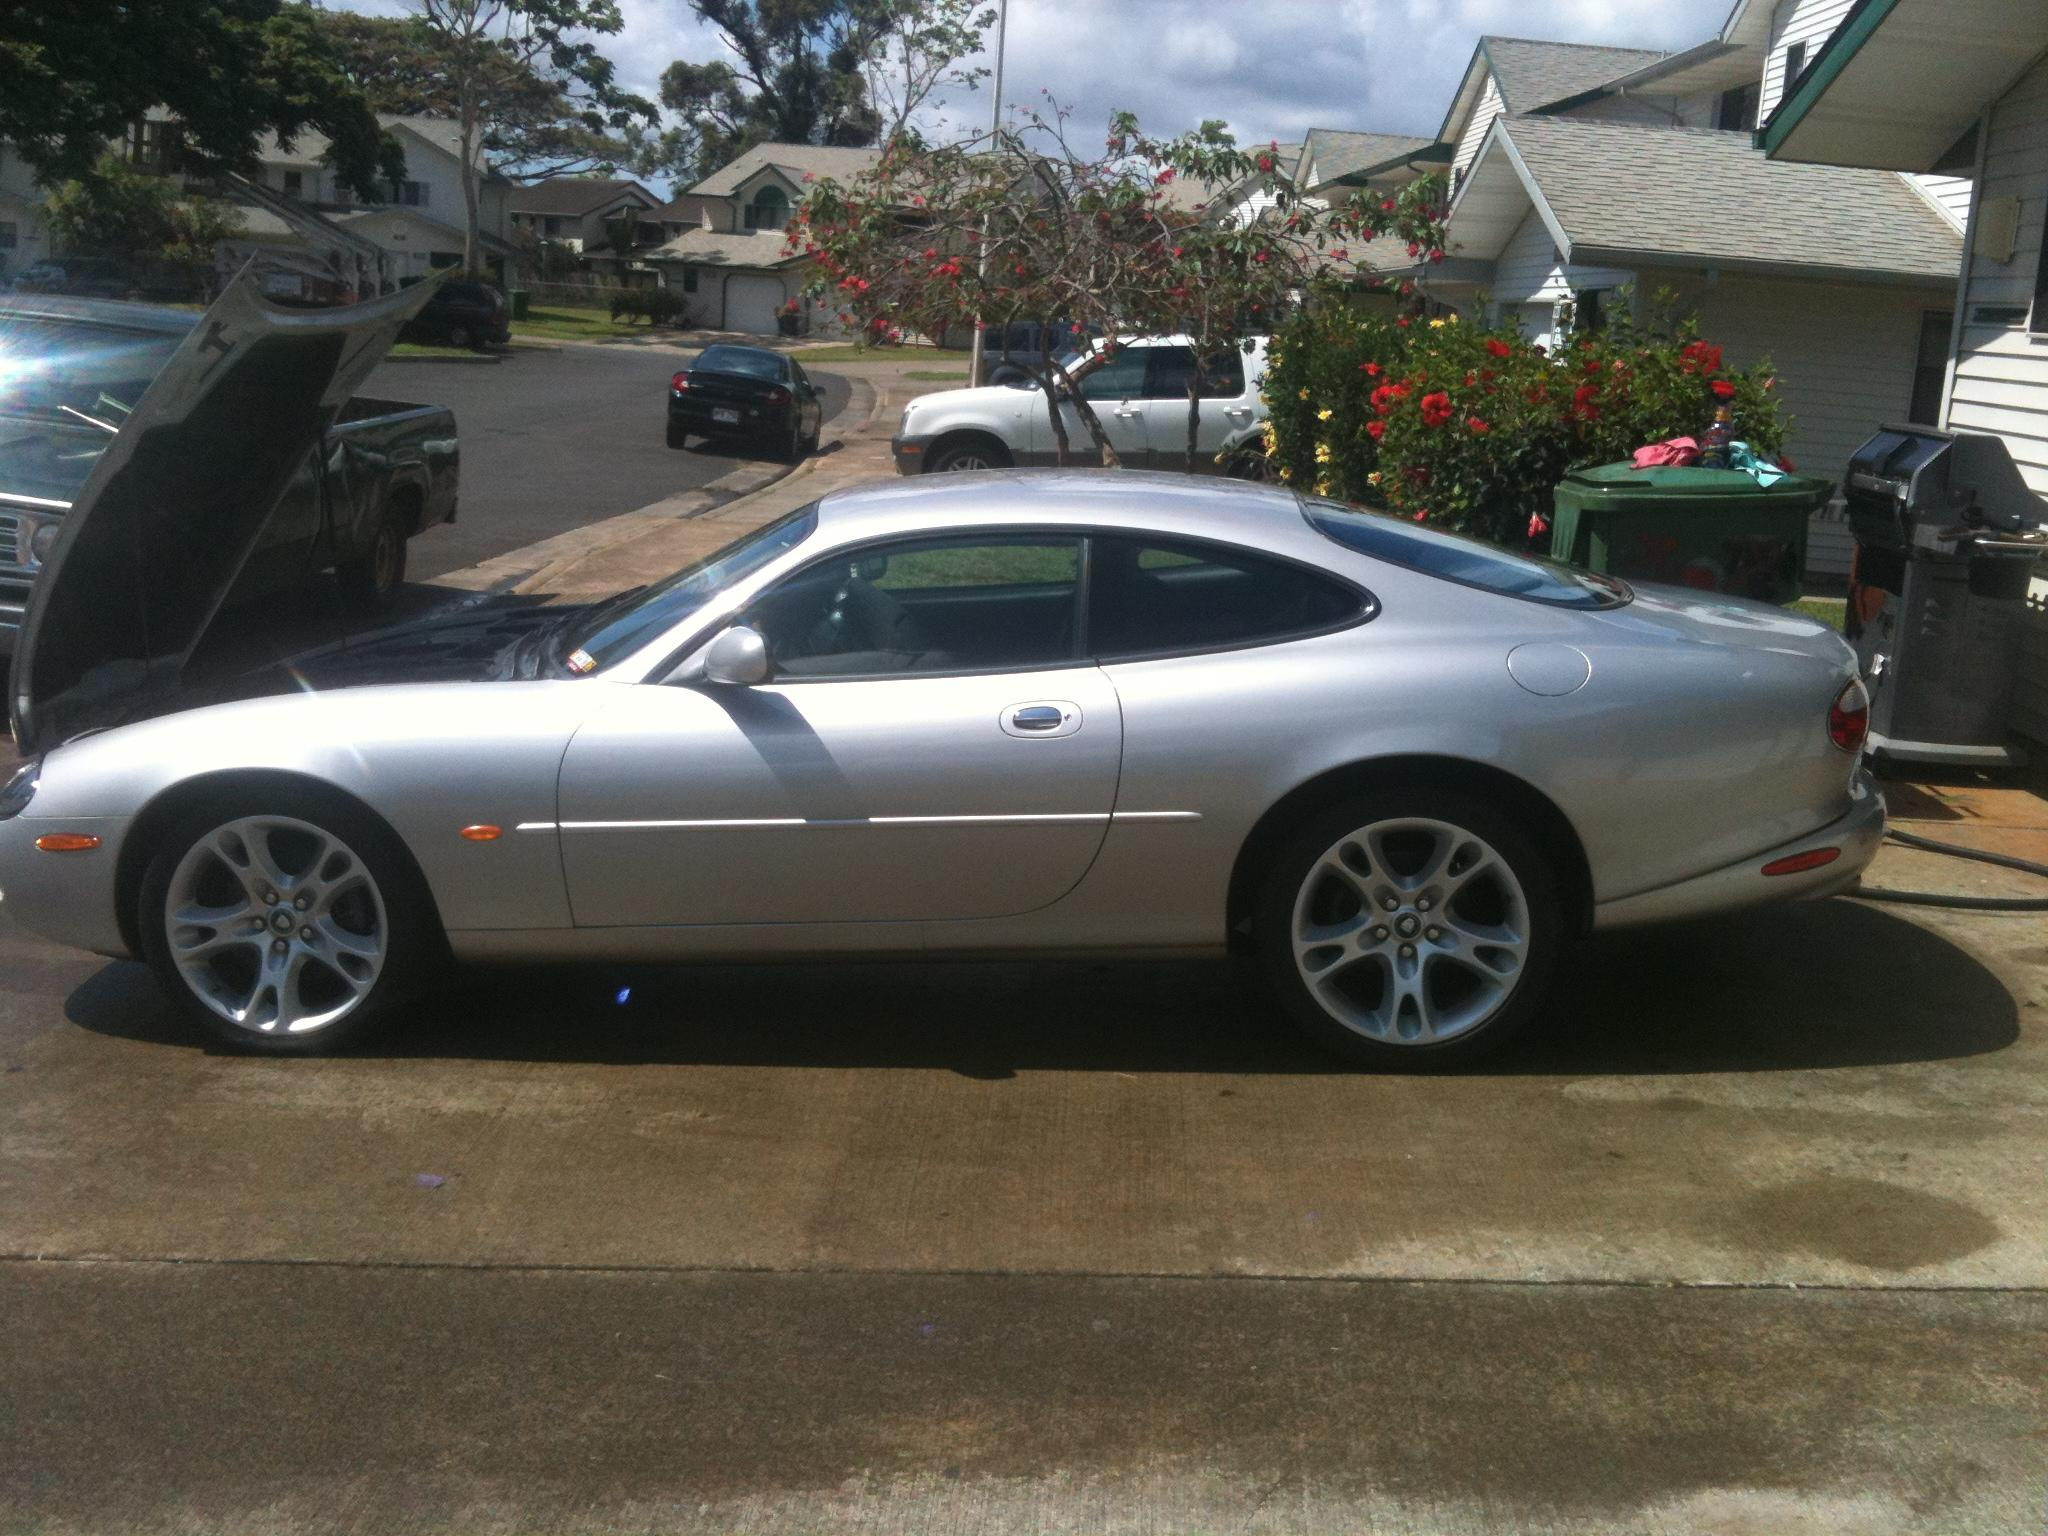 slick_wit_it's 2003 Jaguar XK Series